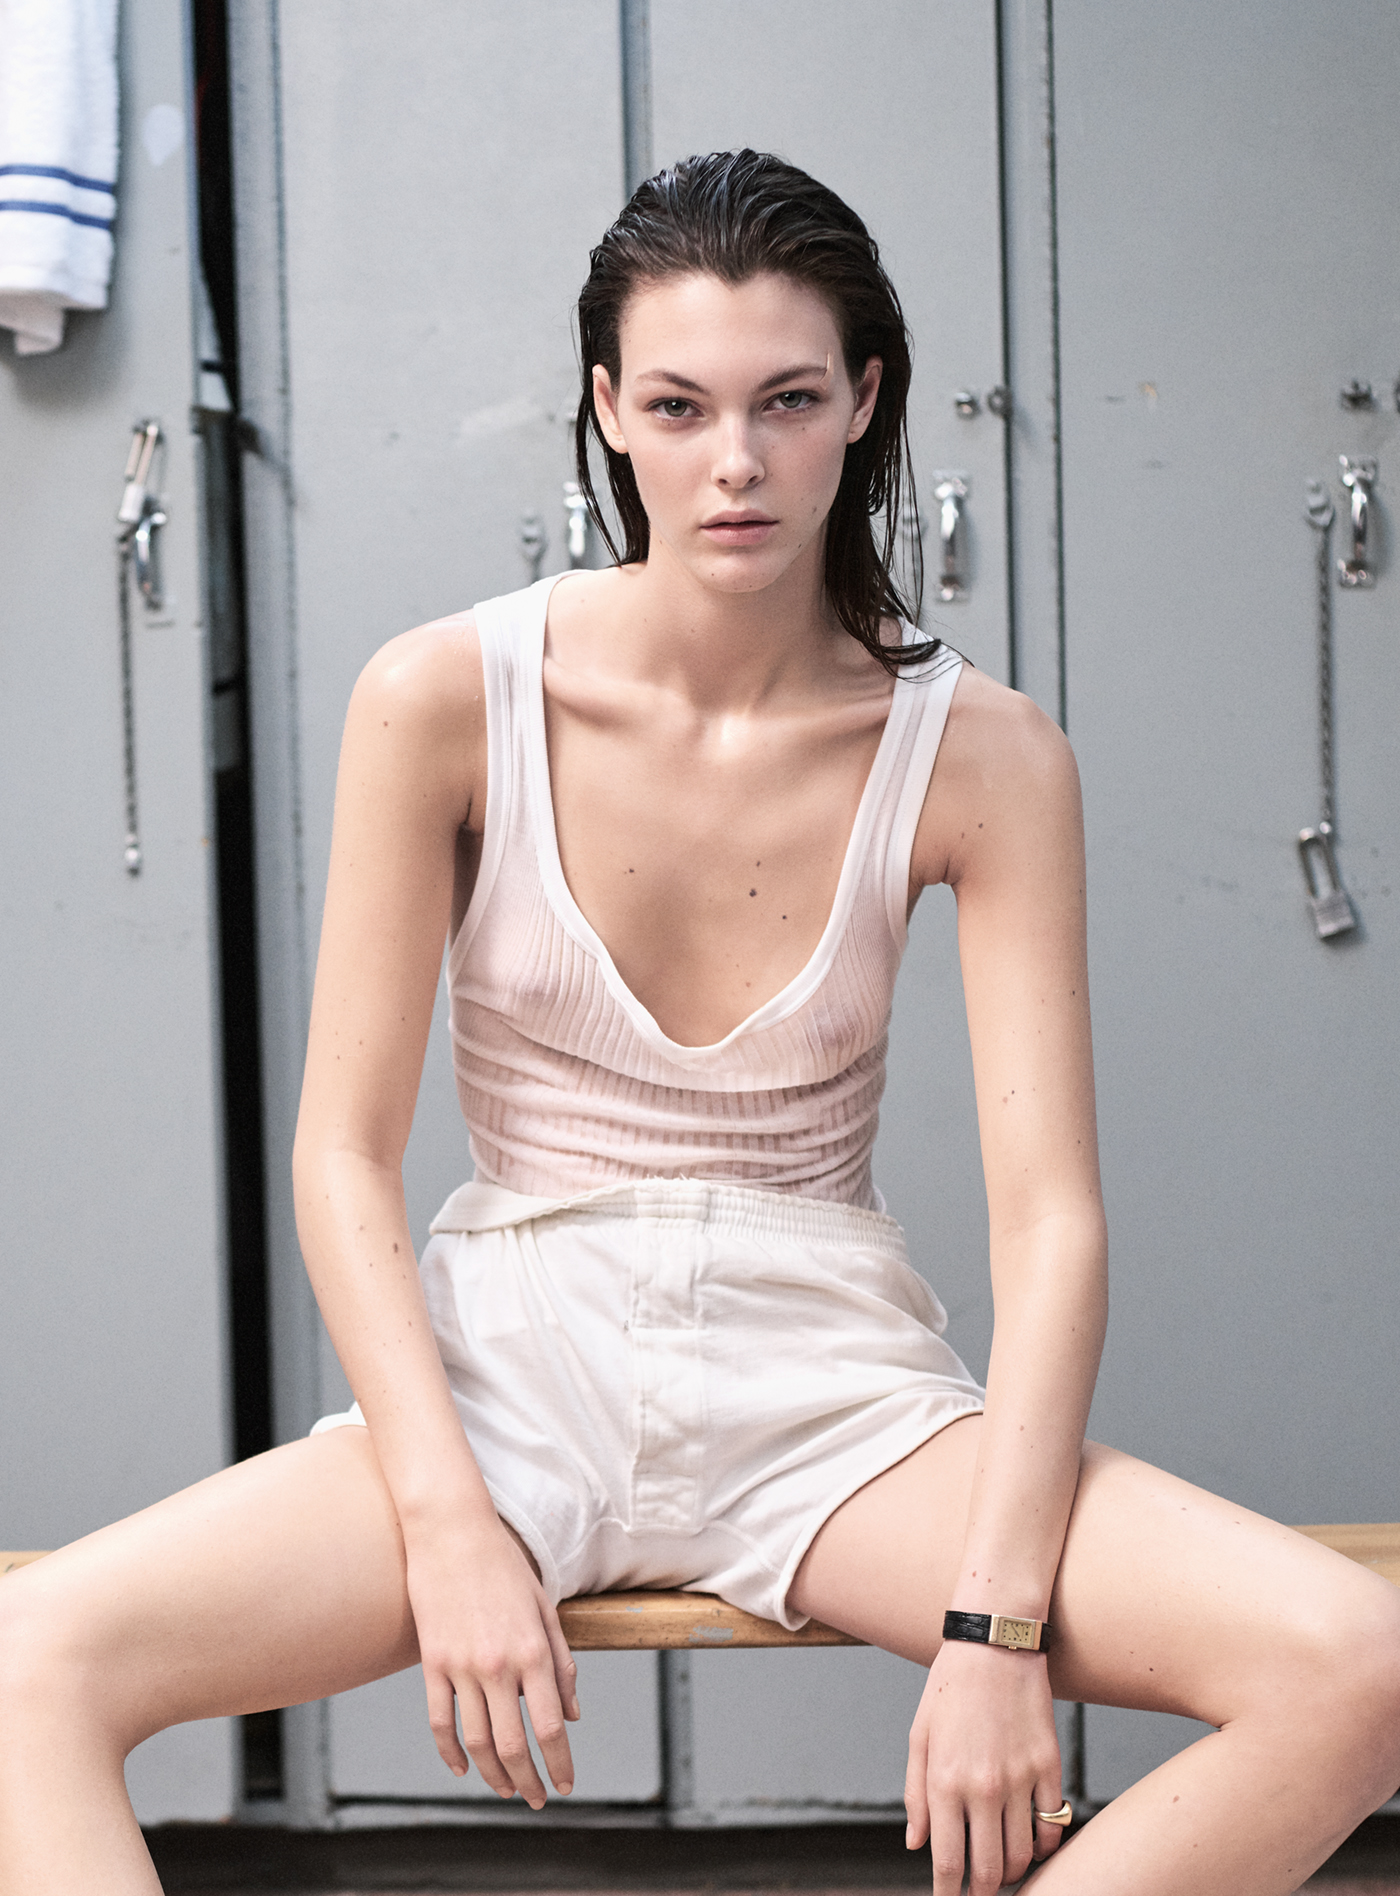 Tank top by Zimmerli. Vintage shorts from Melet Mercantile. Watch, worn throughout, by Boucheron from Aaron Faber Gallery. Ring, worn throughout, by Camilla Dietz Bergeron.